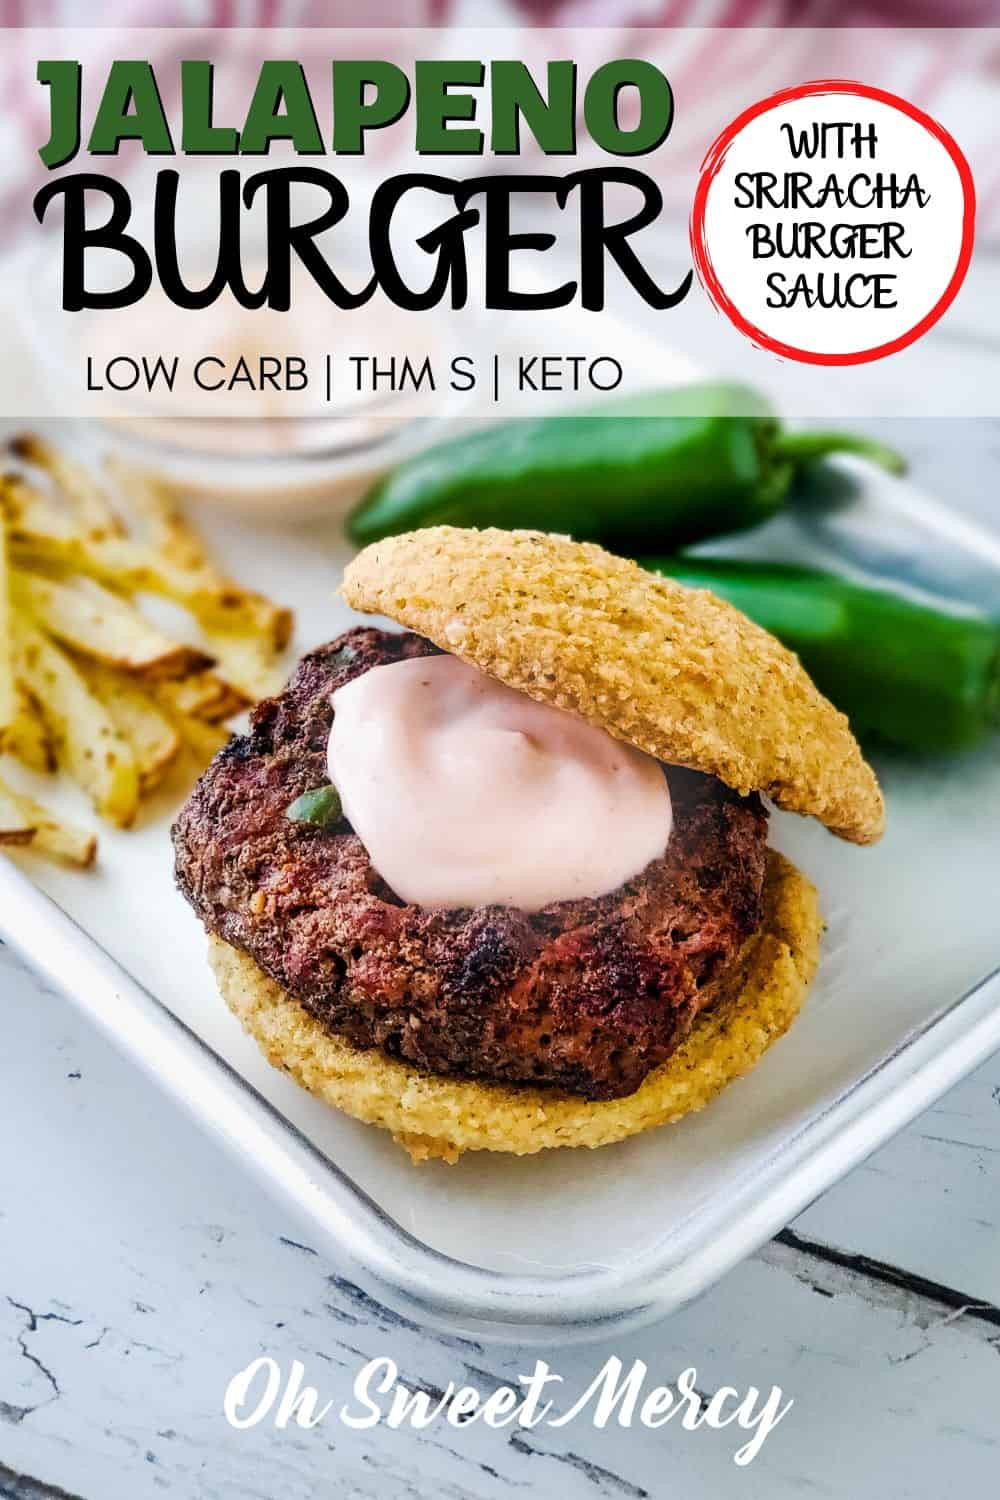 Perfect for summer grilling (or pan frying year round), these spicy jalapeno burgers with sriracha burger sauce are totally satisfying. Make them as spicy as you like! #thm #lowcarb #keto #sugarfree #grilling #burgers #sriracha @ohsweetmercy